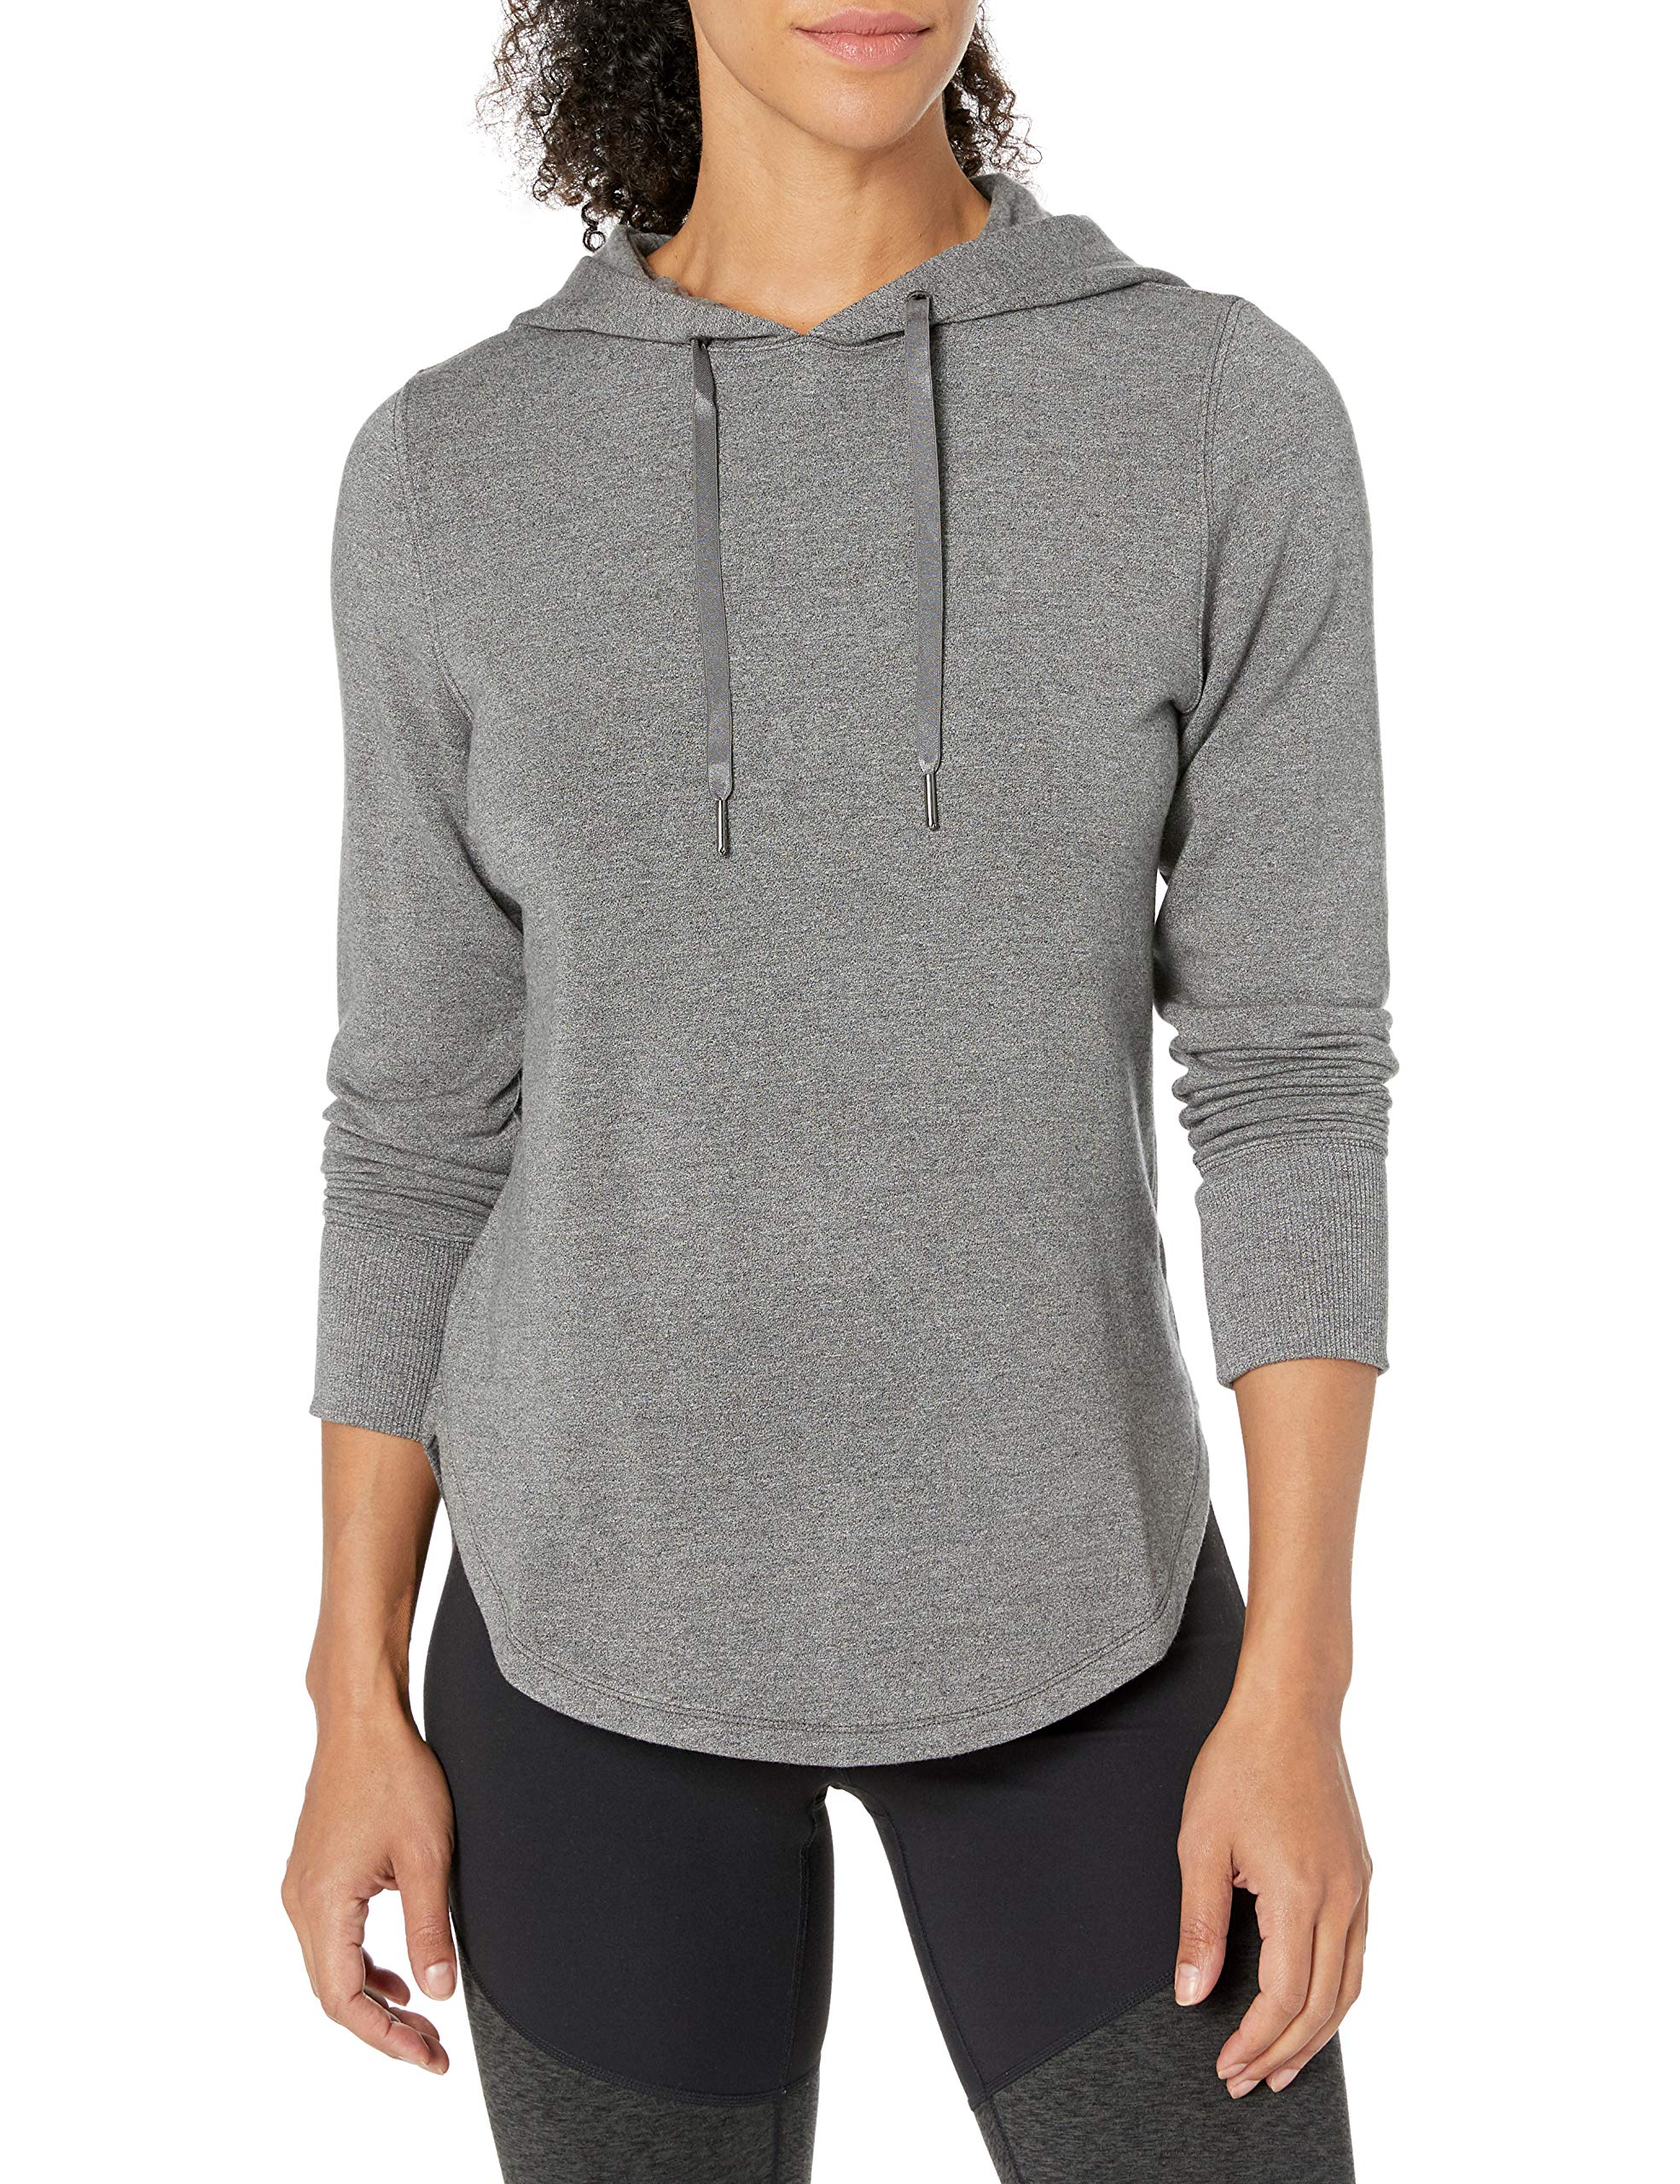 Amazon Brand - Core 10 Women's (XS-3X)Cloud Soft Yoga Fleece Hoodie Sweatshirt